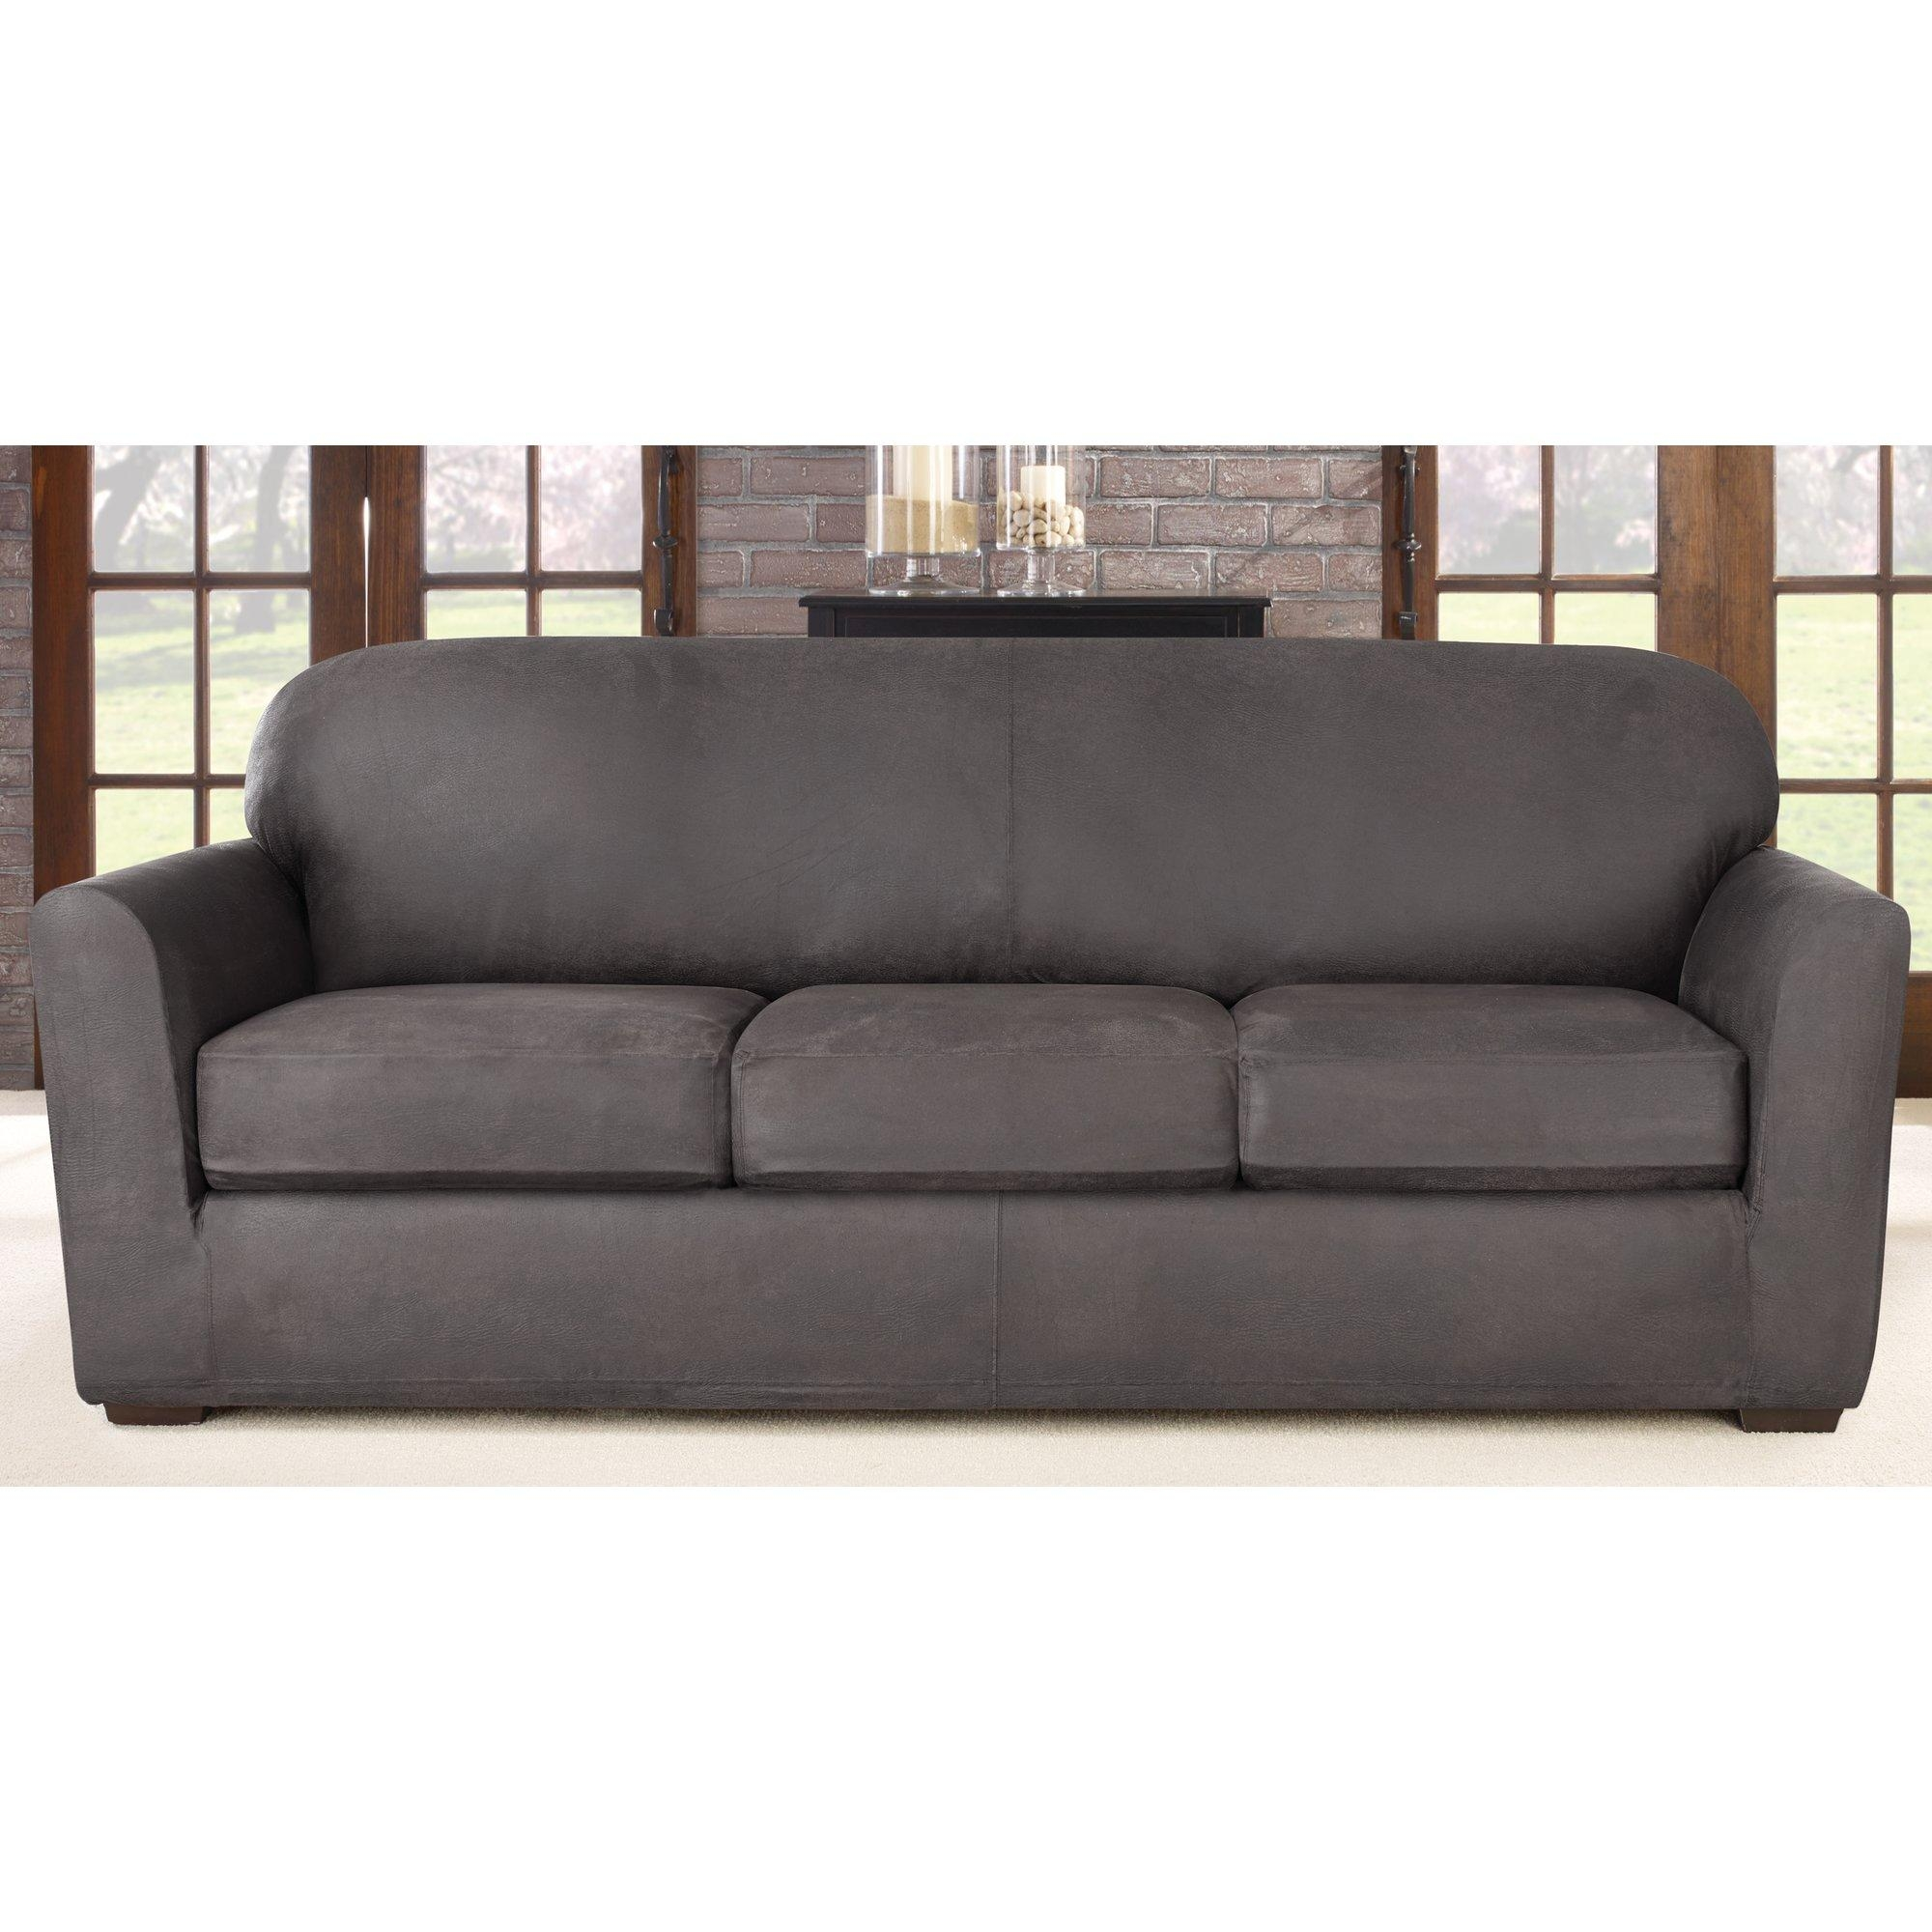 Furniture: Slipcover For Camelback Sofa | Linen Sofa Slipcover With Regard To Camelback Sofa Slipcovers (Image 11 of 19)